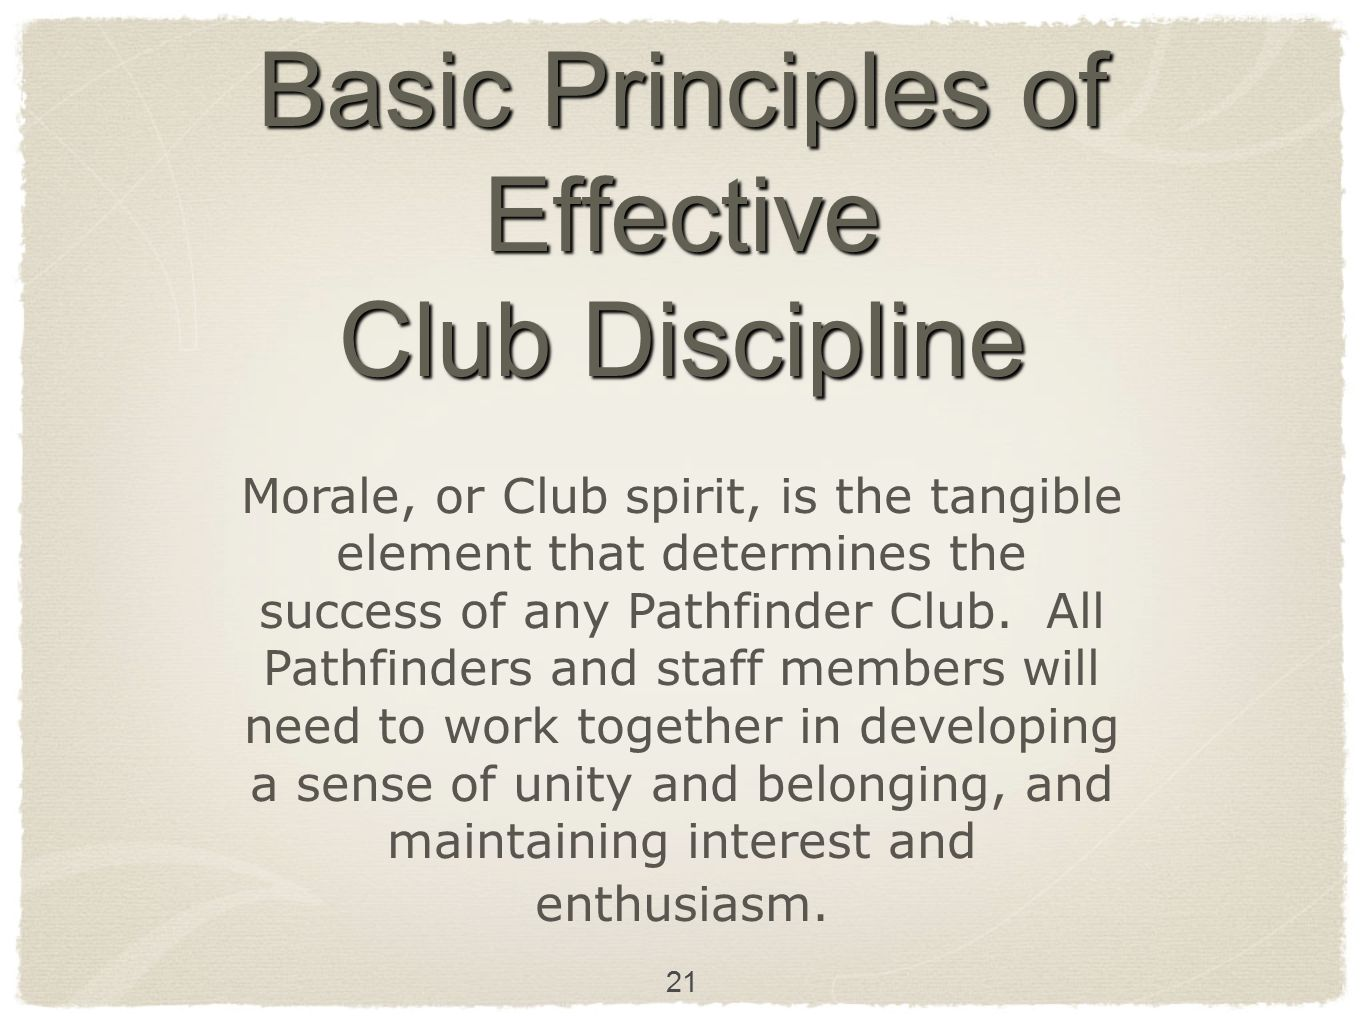 Basic Principles of Effective Club Discipline